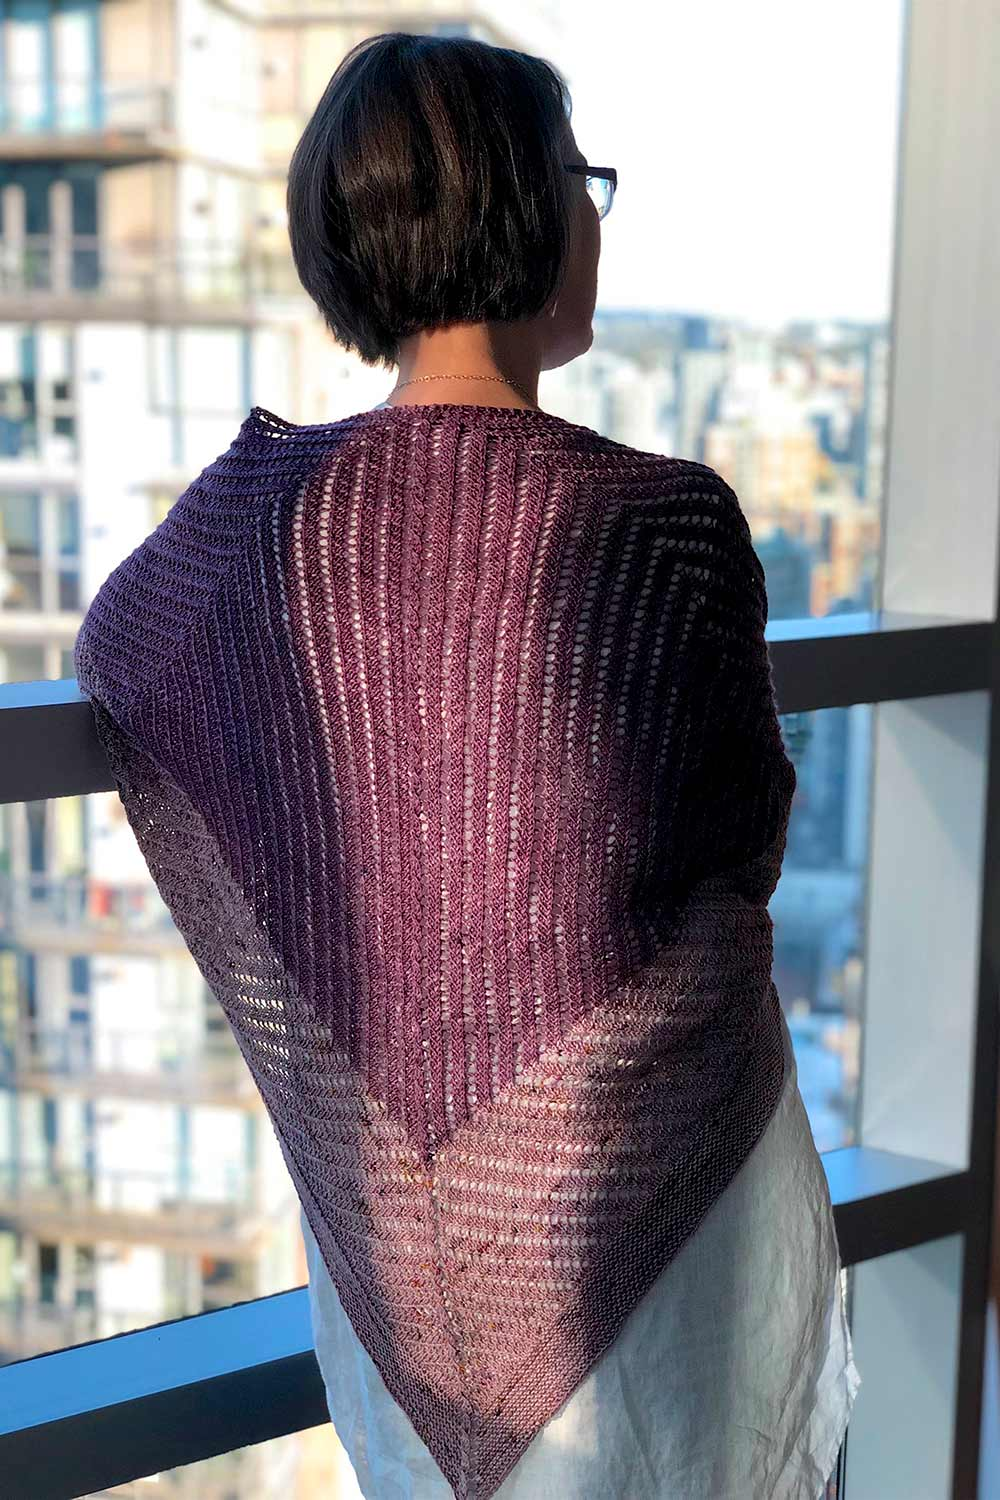 Two-tone triangular shawl draped over shoulders and hanging down back. Stitch pattern bends 90 degrees at the colour change.